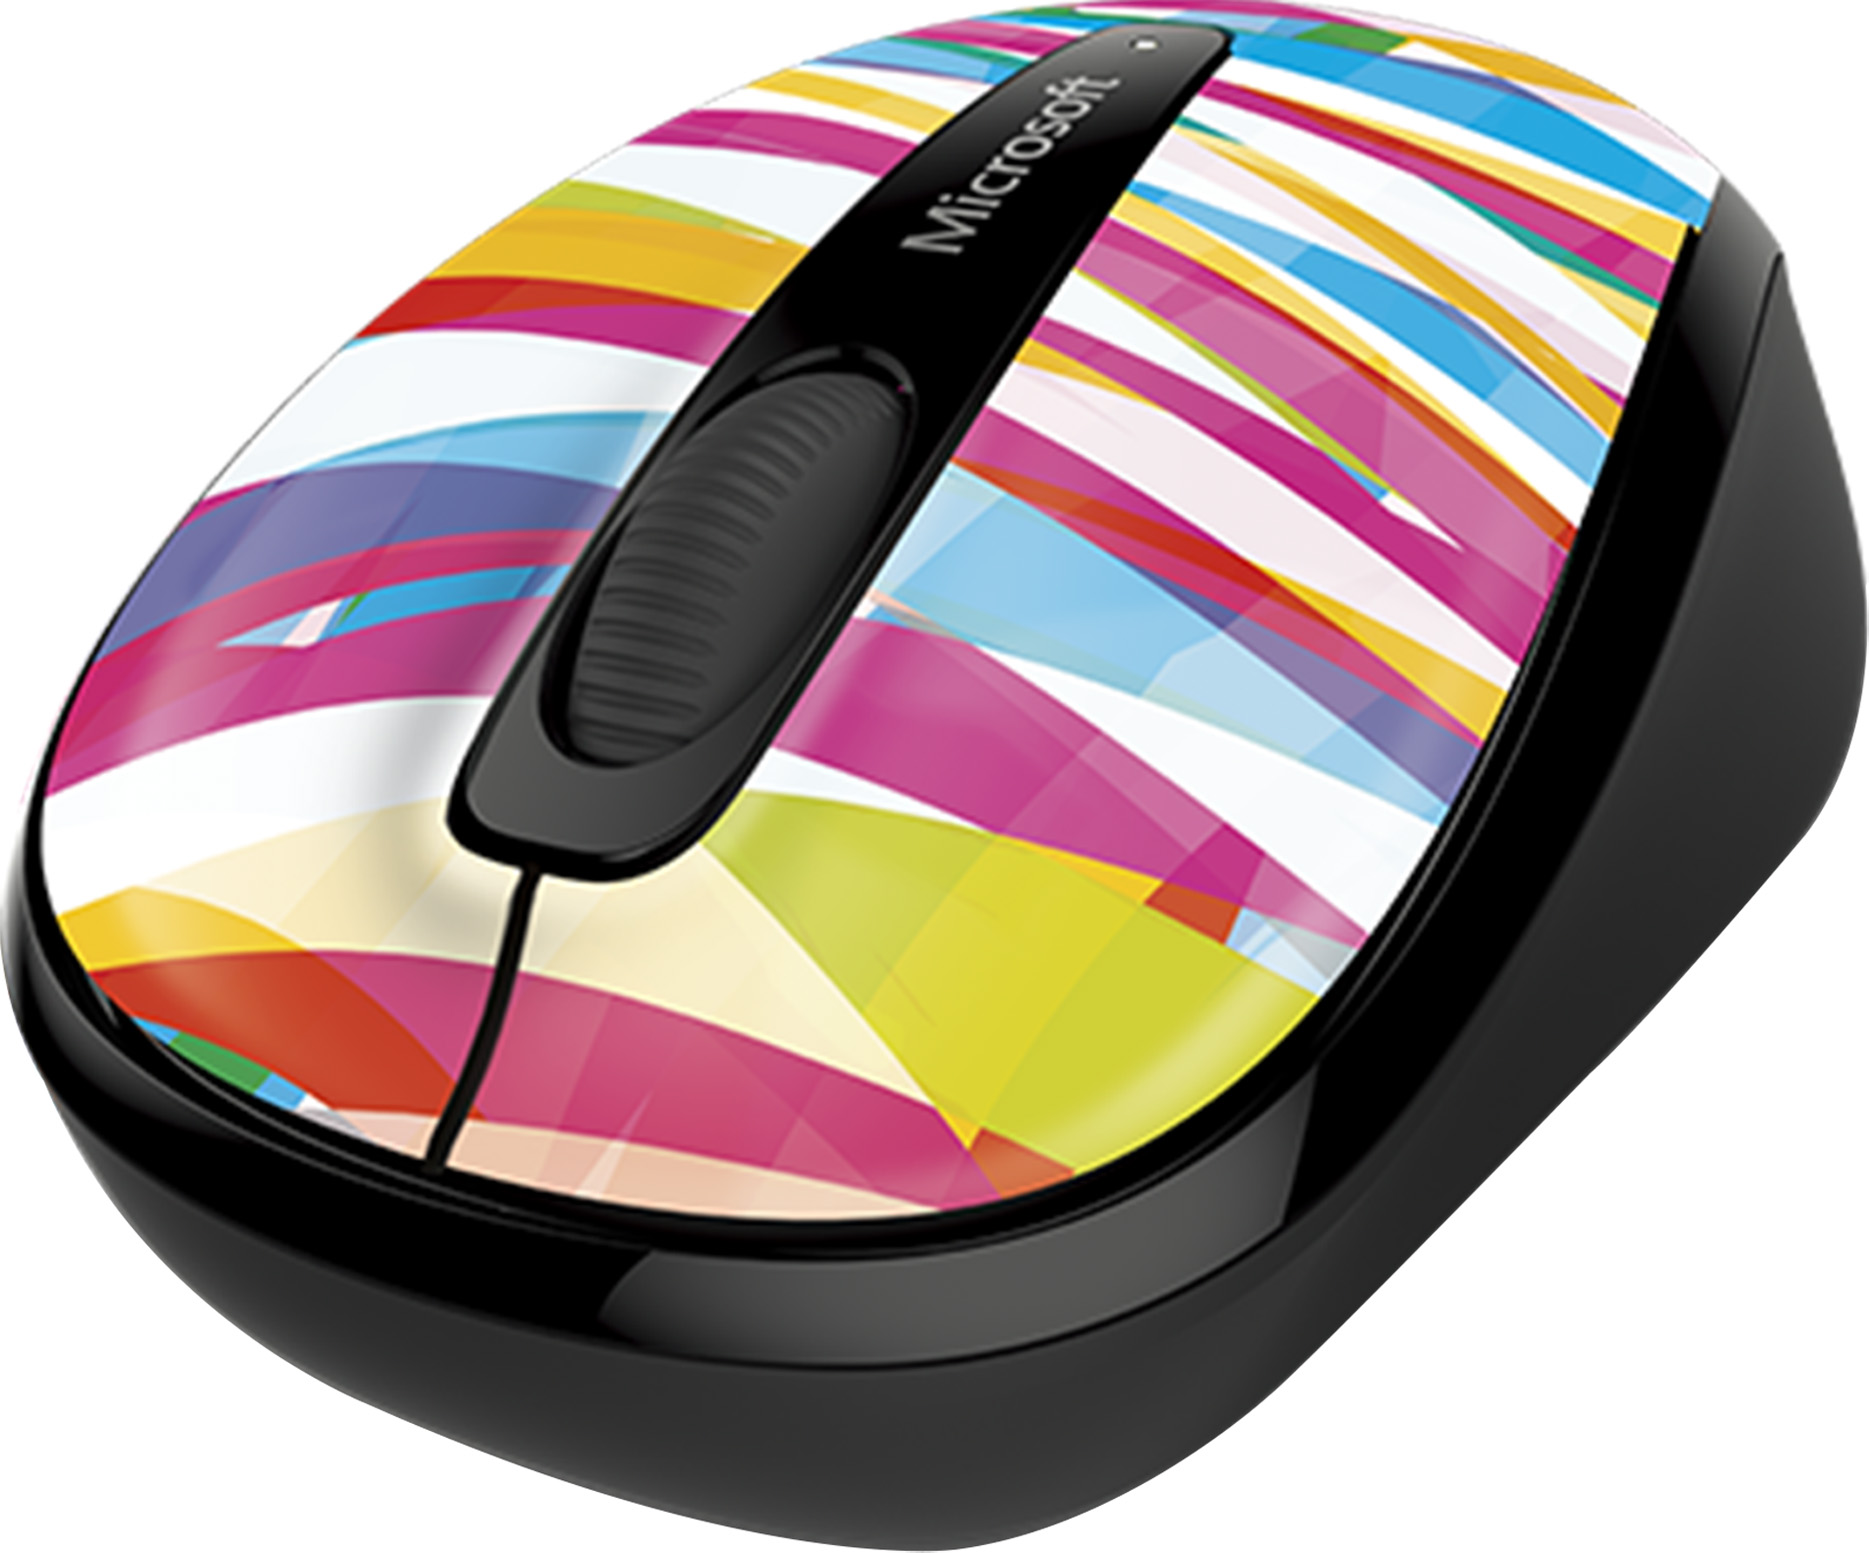 wireless-mobile-mouse-3500-bandage-stripes